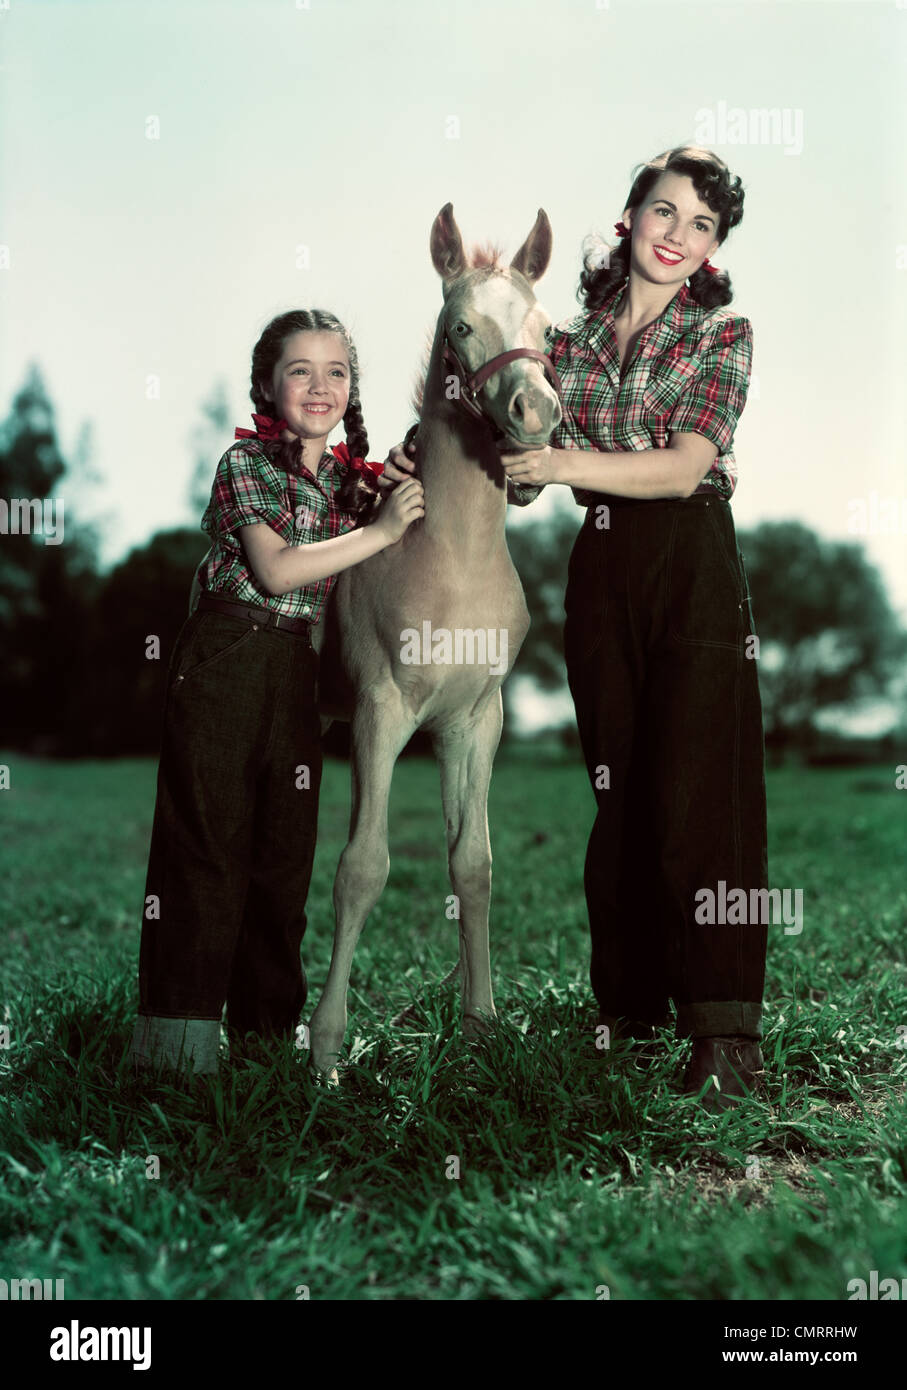 1940s 1950s SMILING GIRL AND TEENAGE GIRL WEARING MATCHING PLAID SHIRTS AND JEANS POSING WITH PONY COLT - Stock Image